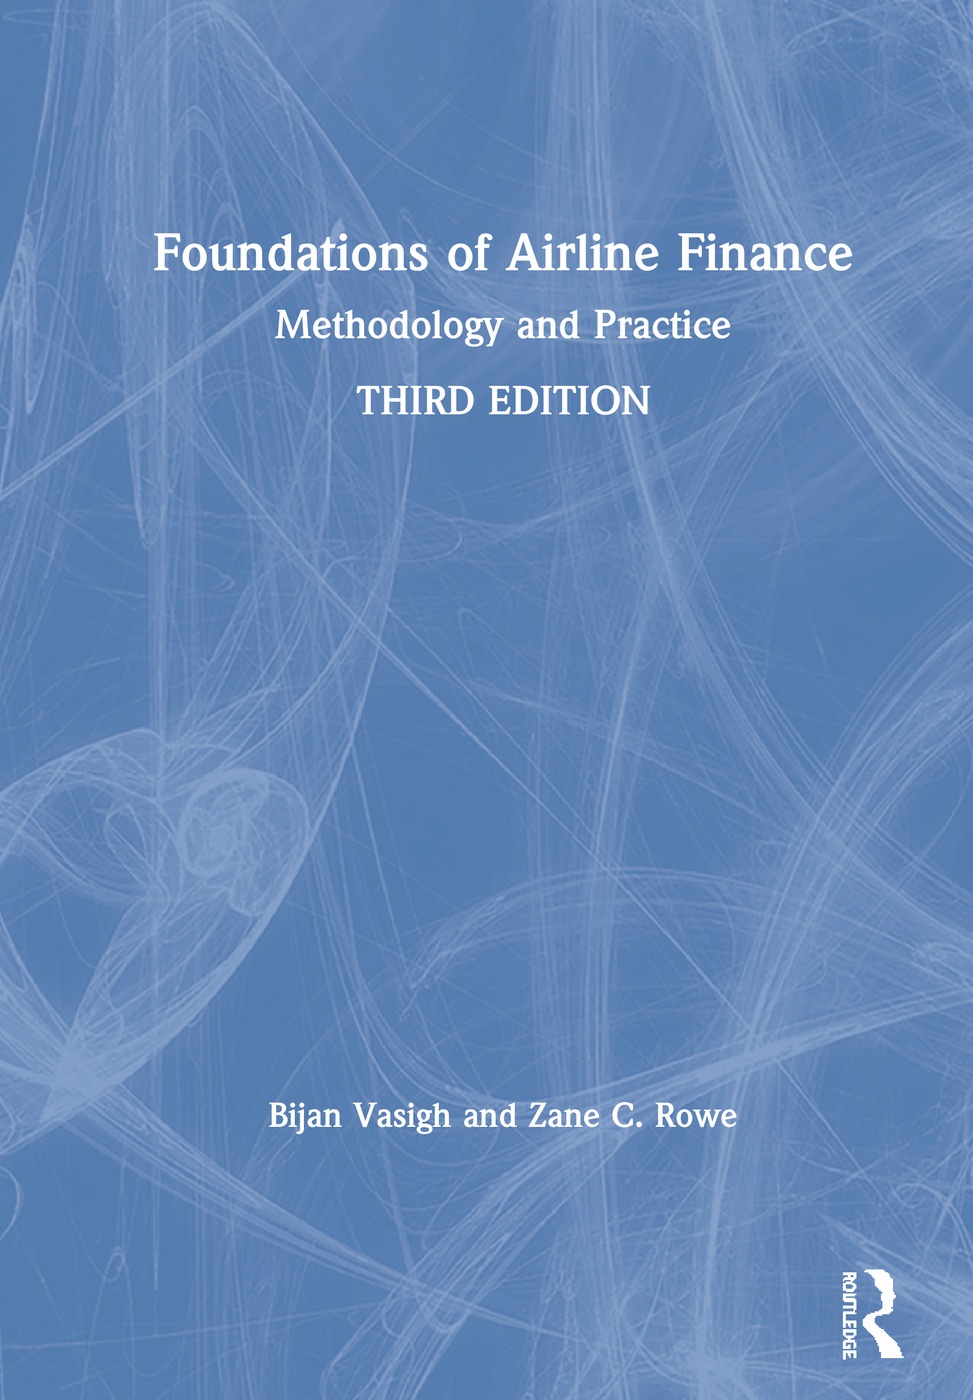 The time value of money and its setting in the aviation industry